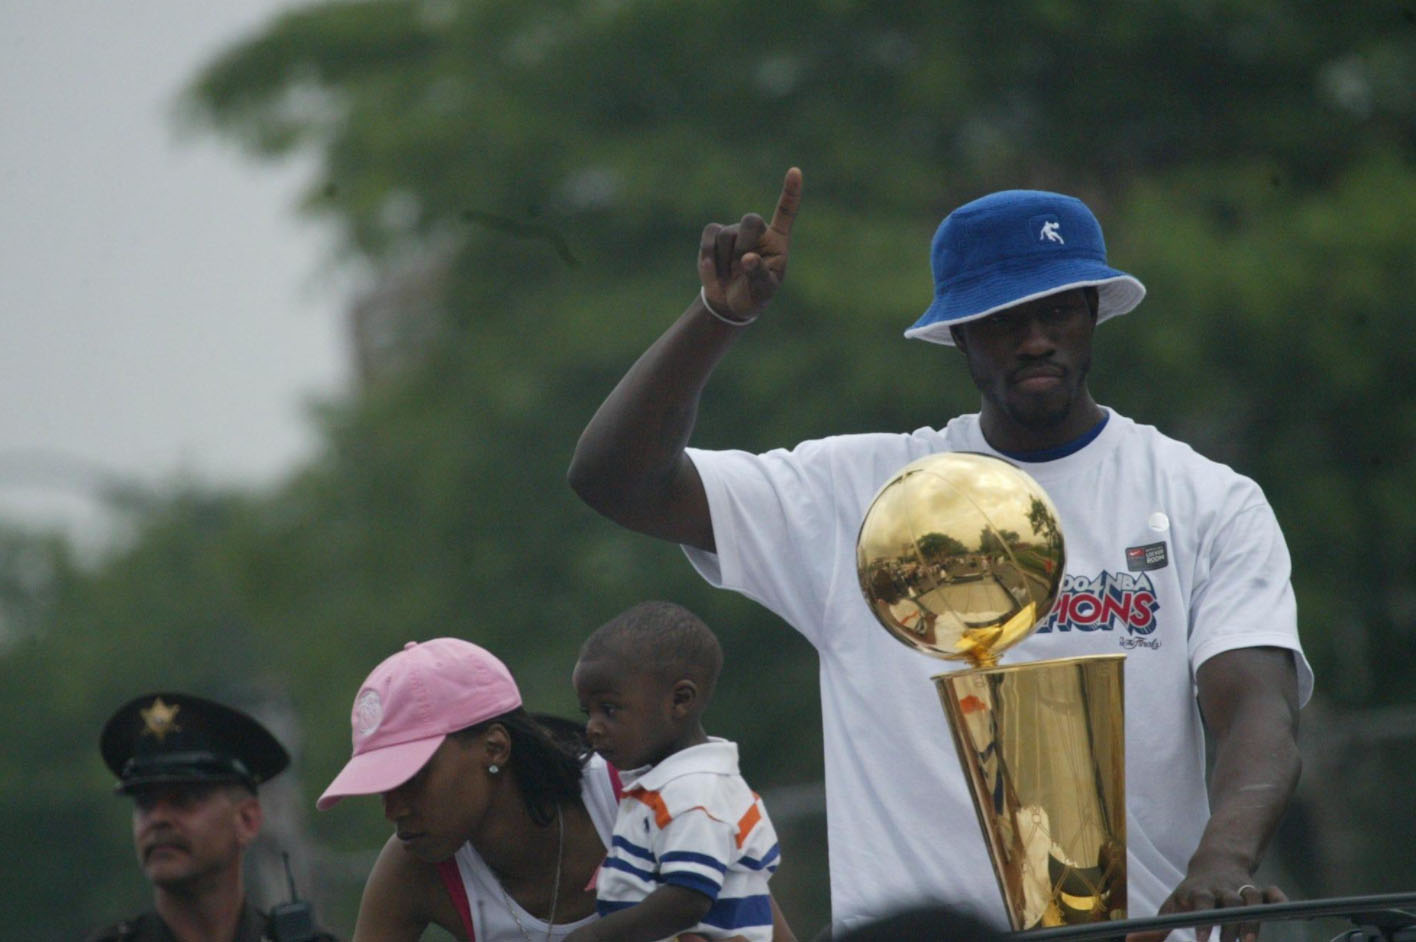 Detroit Pistons' Ben Wallace to be first undrafted player inducted into Hall of Fame